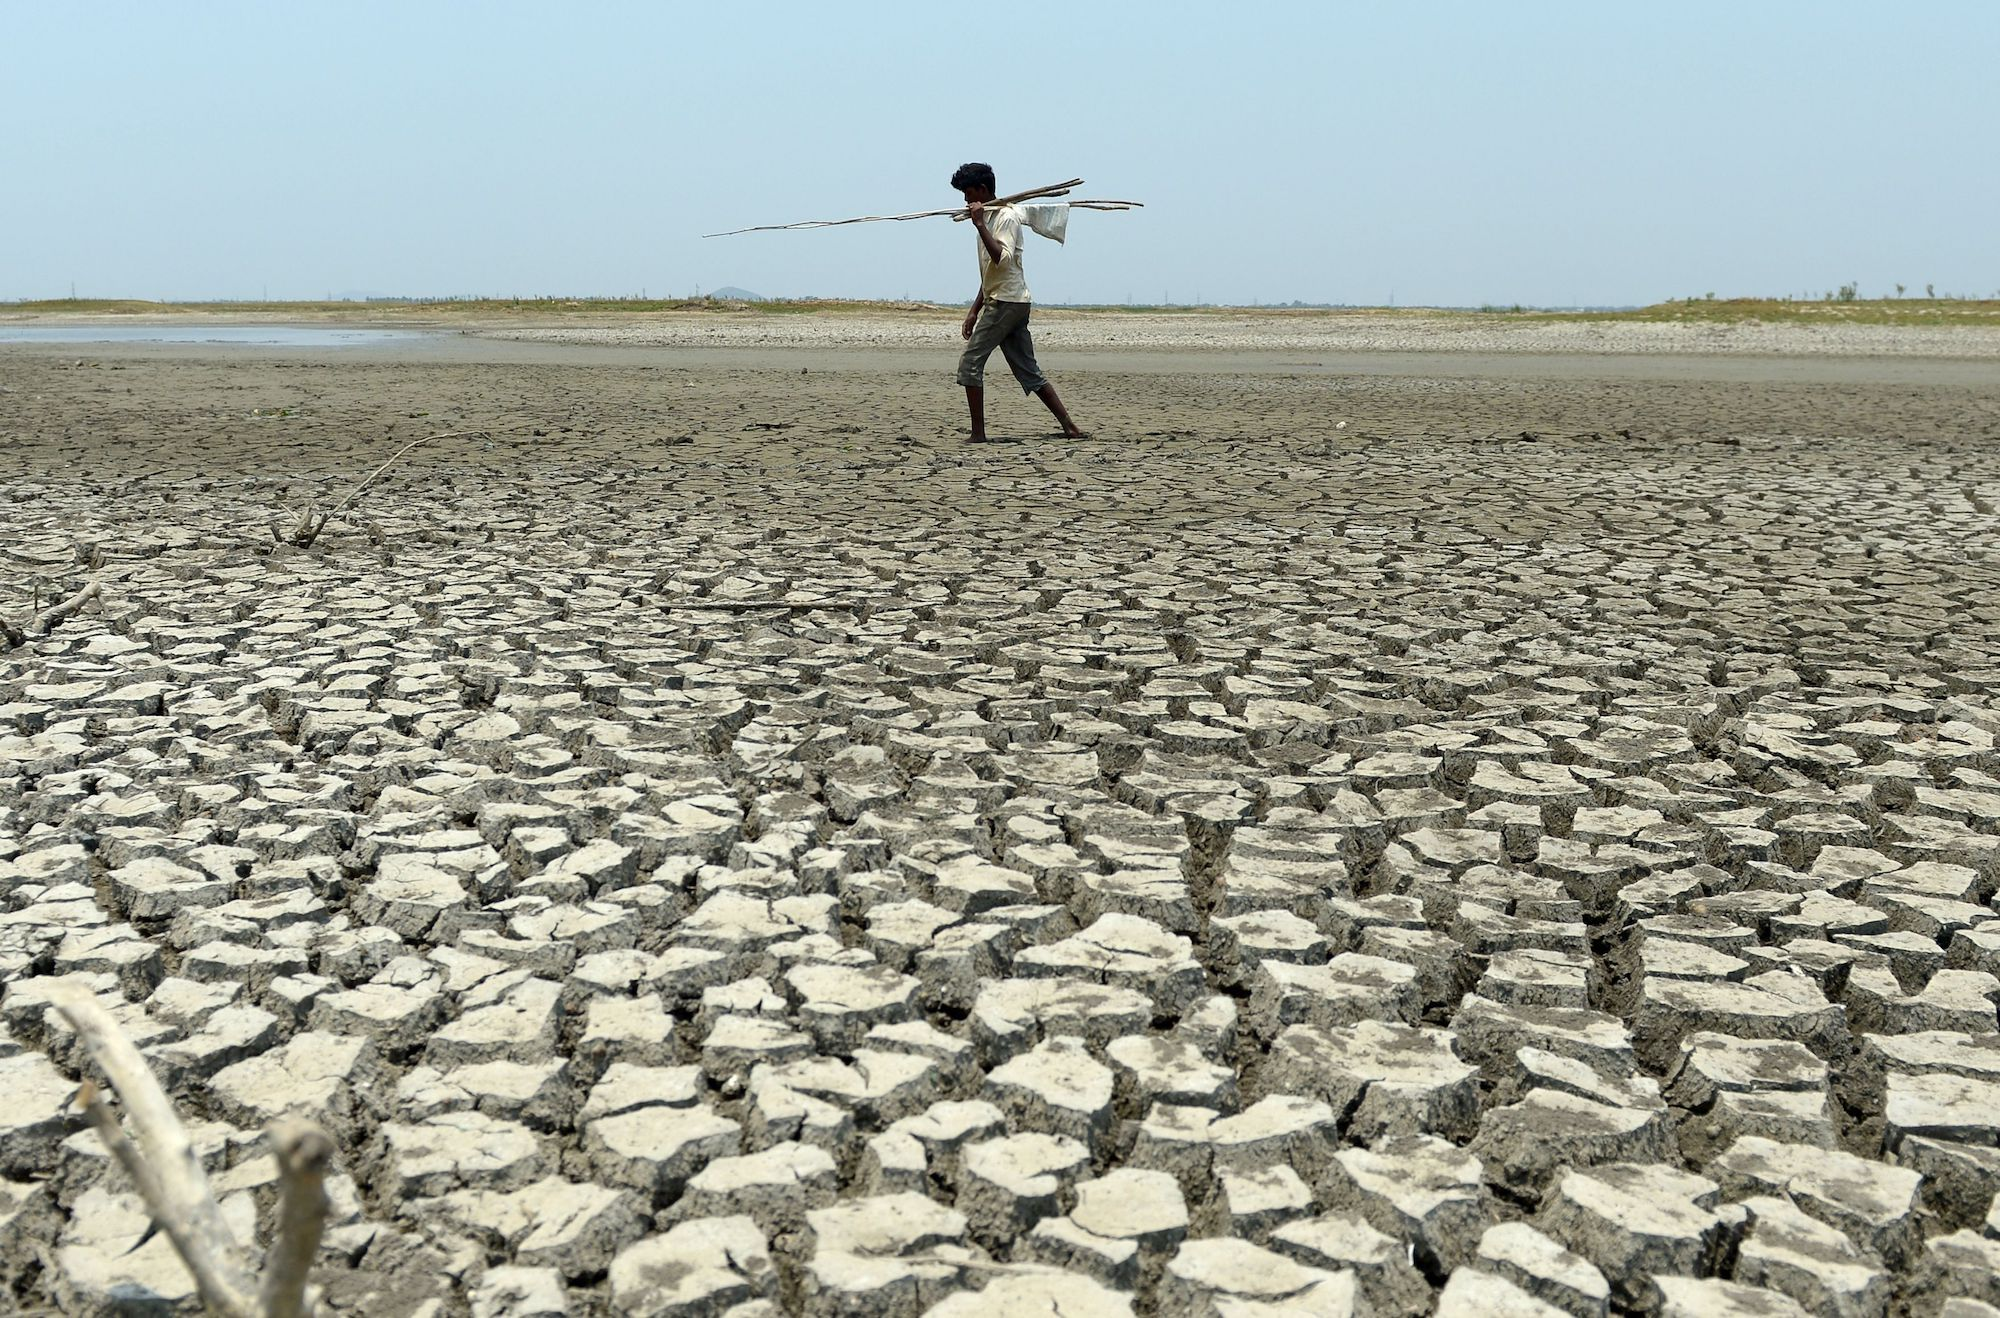 No System of Government Designed by Human Beings Can Survive What the Climate Crisis Will Bring